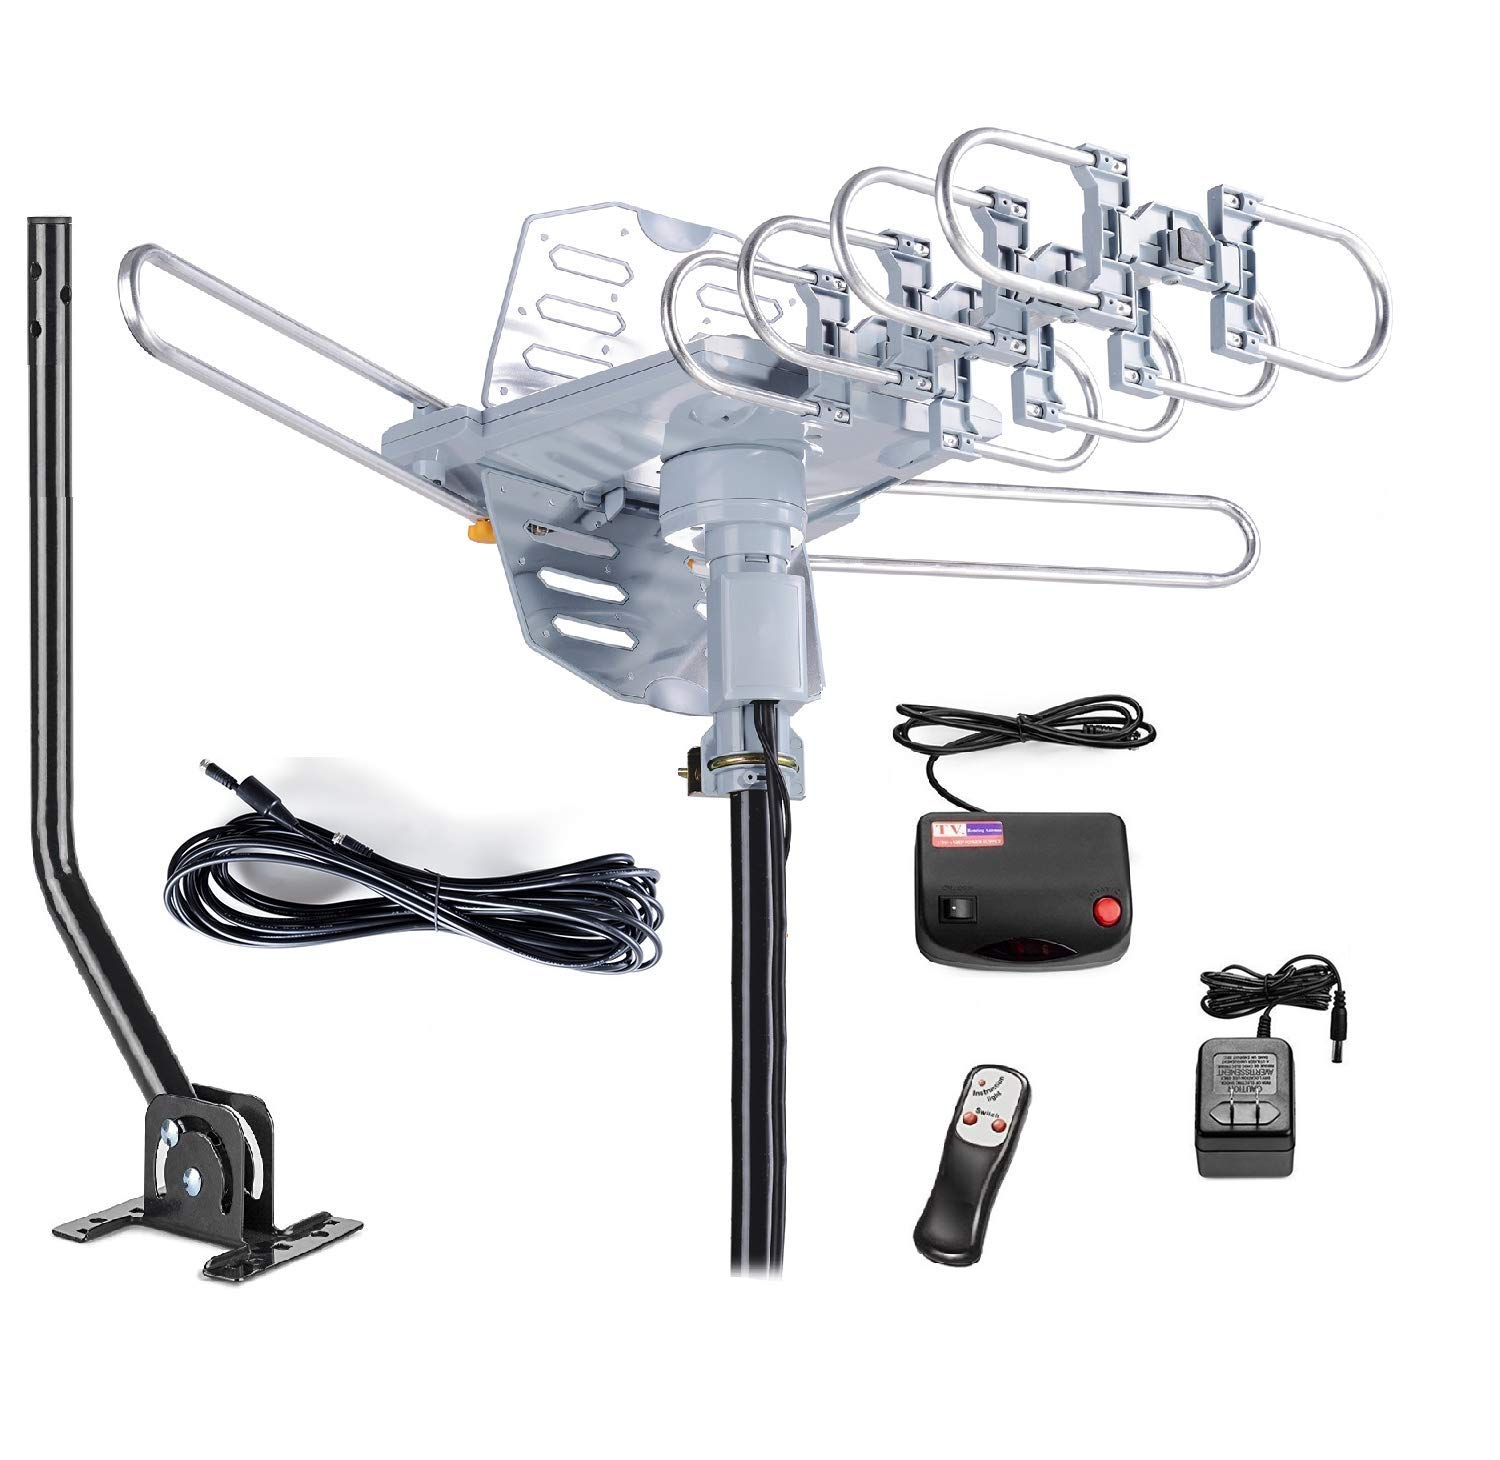 McDuory Outdoor 150 Miles Digital Antenna 360 Degree Rotation Amplified HDTV Antenna -Support 2 TVs-UHF/VHF/1080P/4K - Infrared Remote - 40ft RG6 Cable and Mounting Pole Included by McDuory